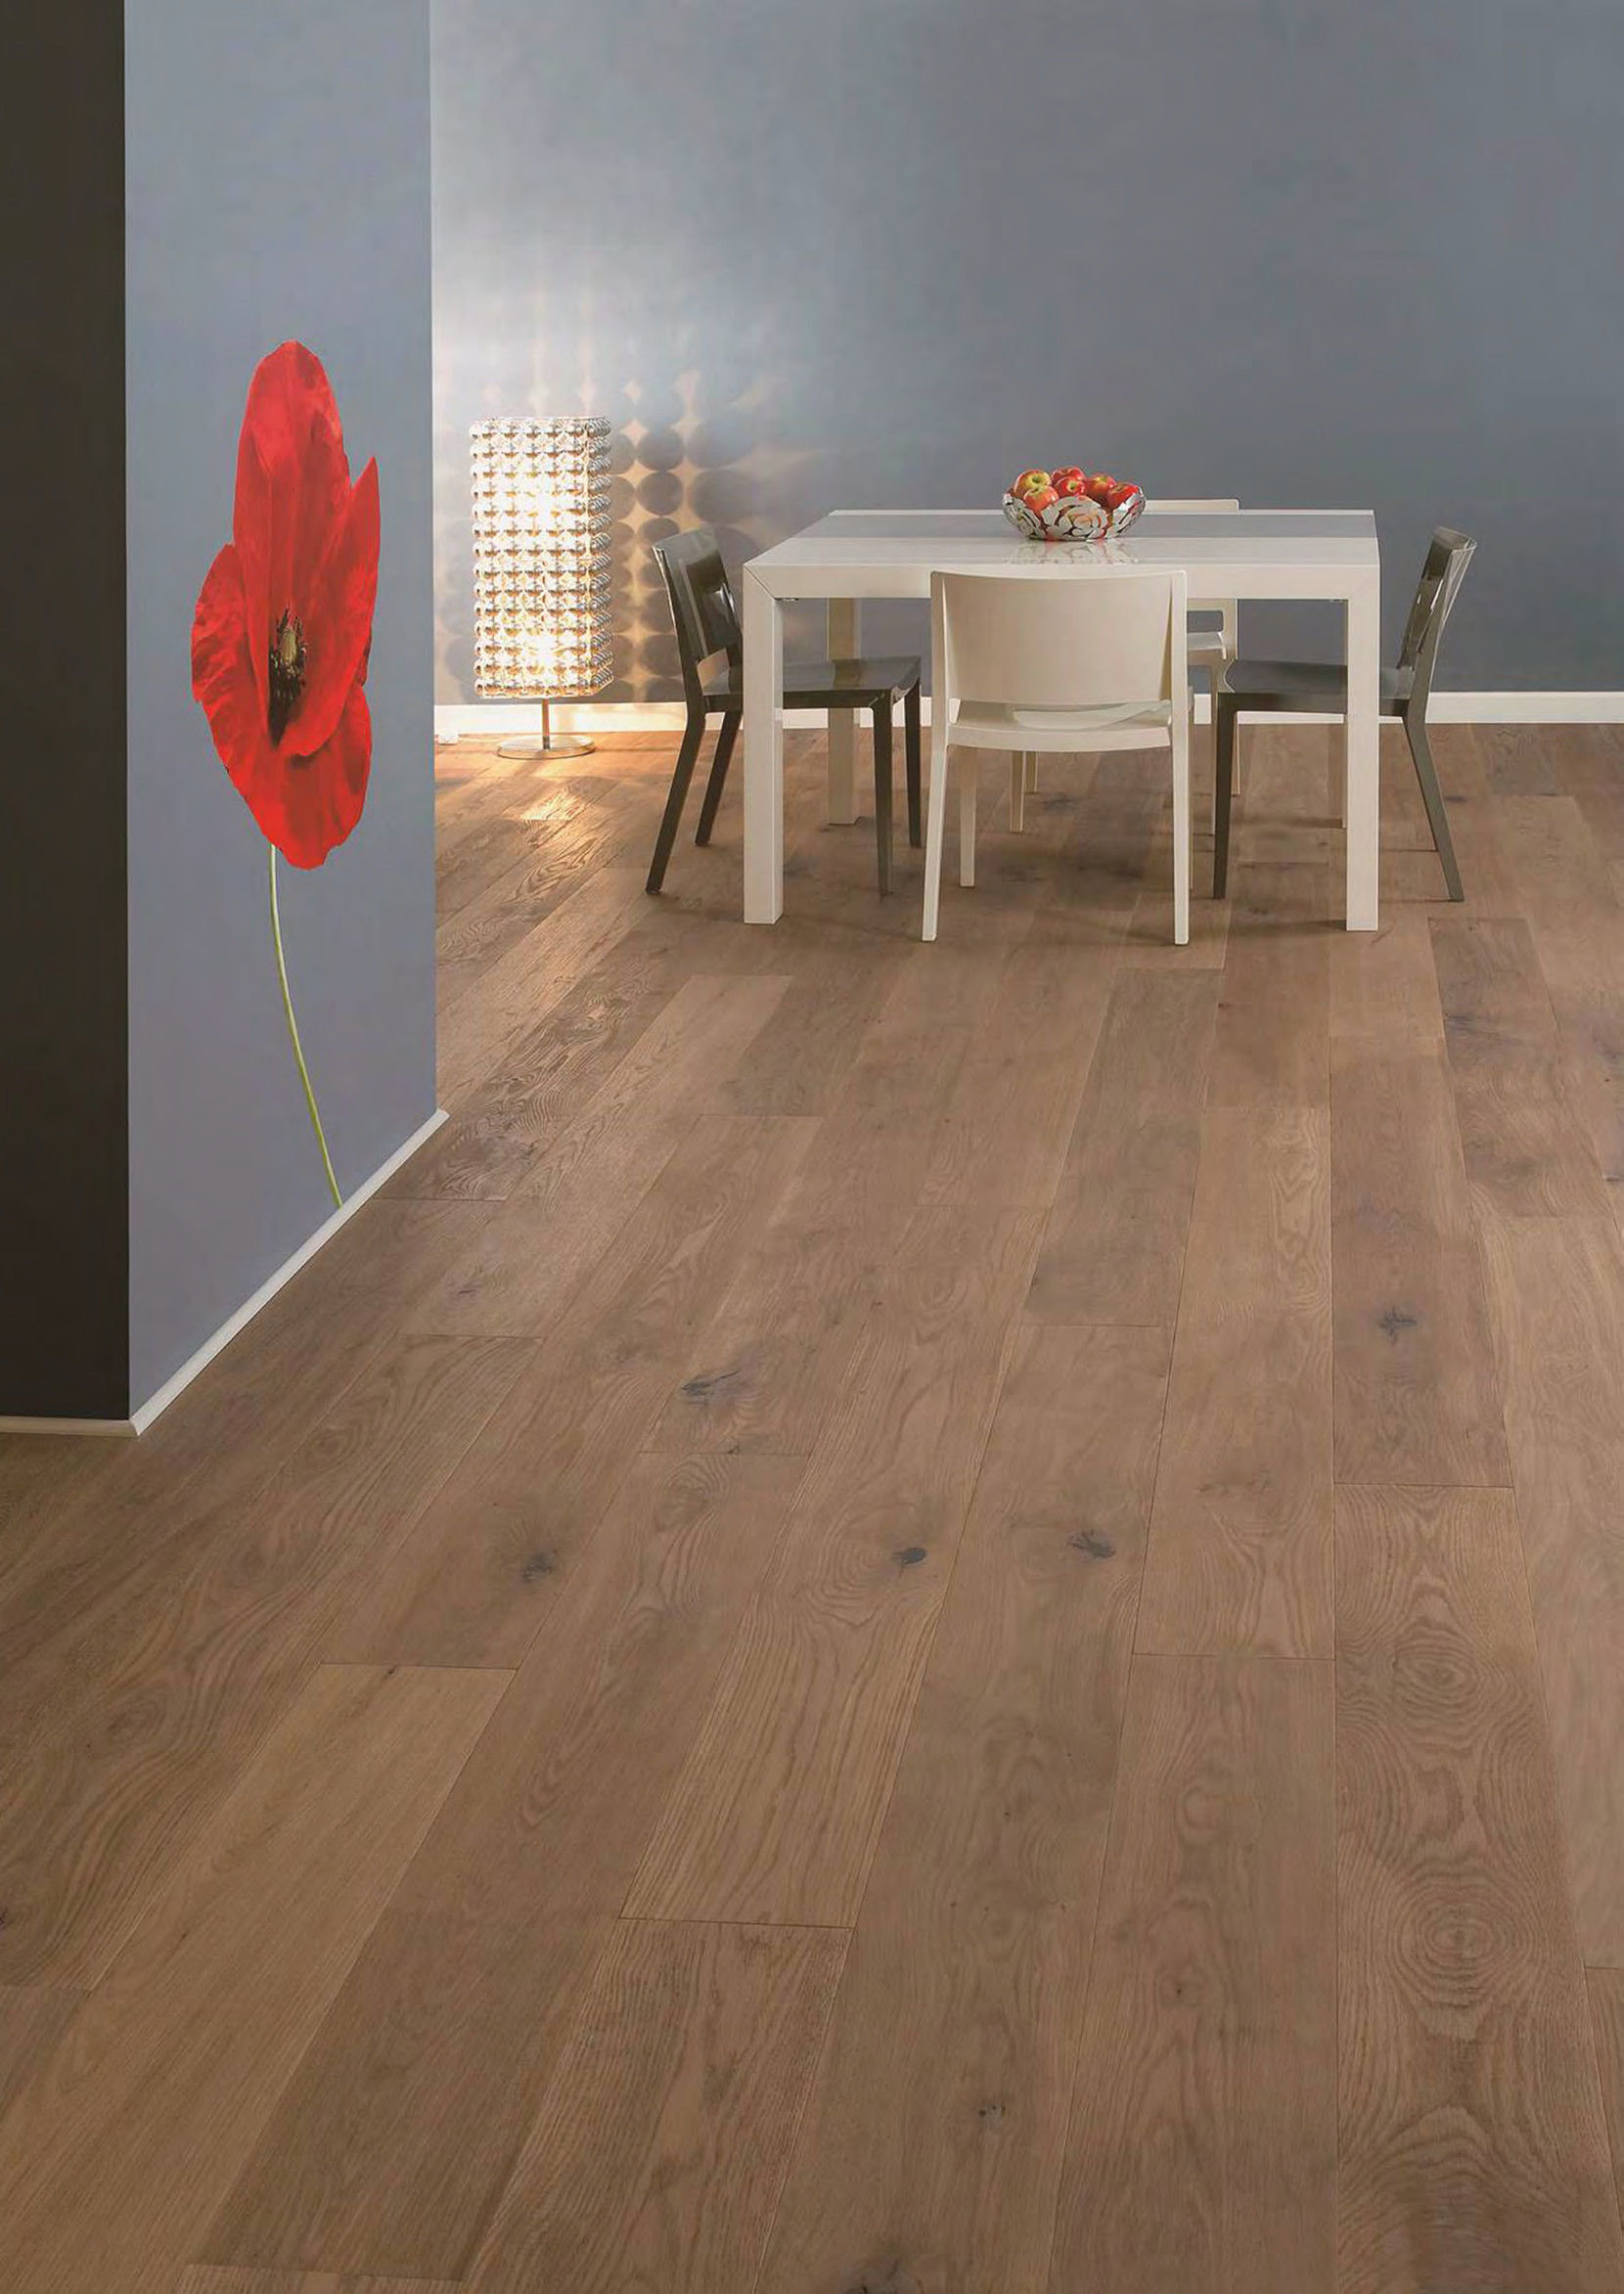 homerwood hardwood flooring prices of brooks bros for hardwood flooring 2016 17 price list pdf regarding antique classic strip ozark timbertop this sustainably sourced range of european timber is engineered into the